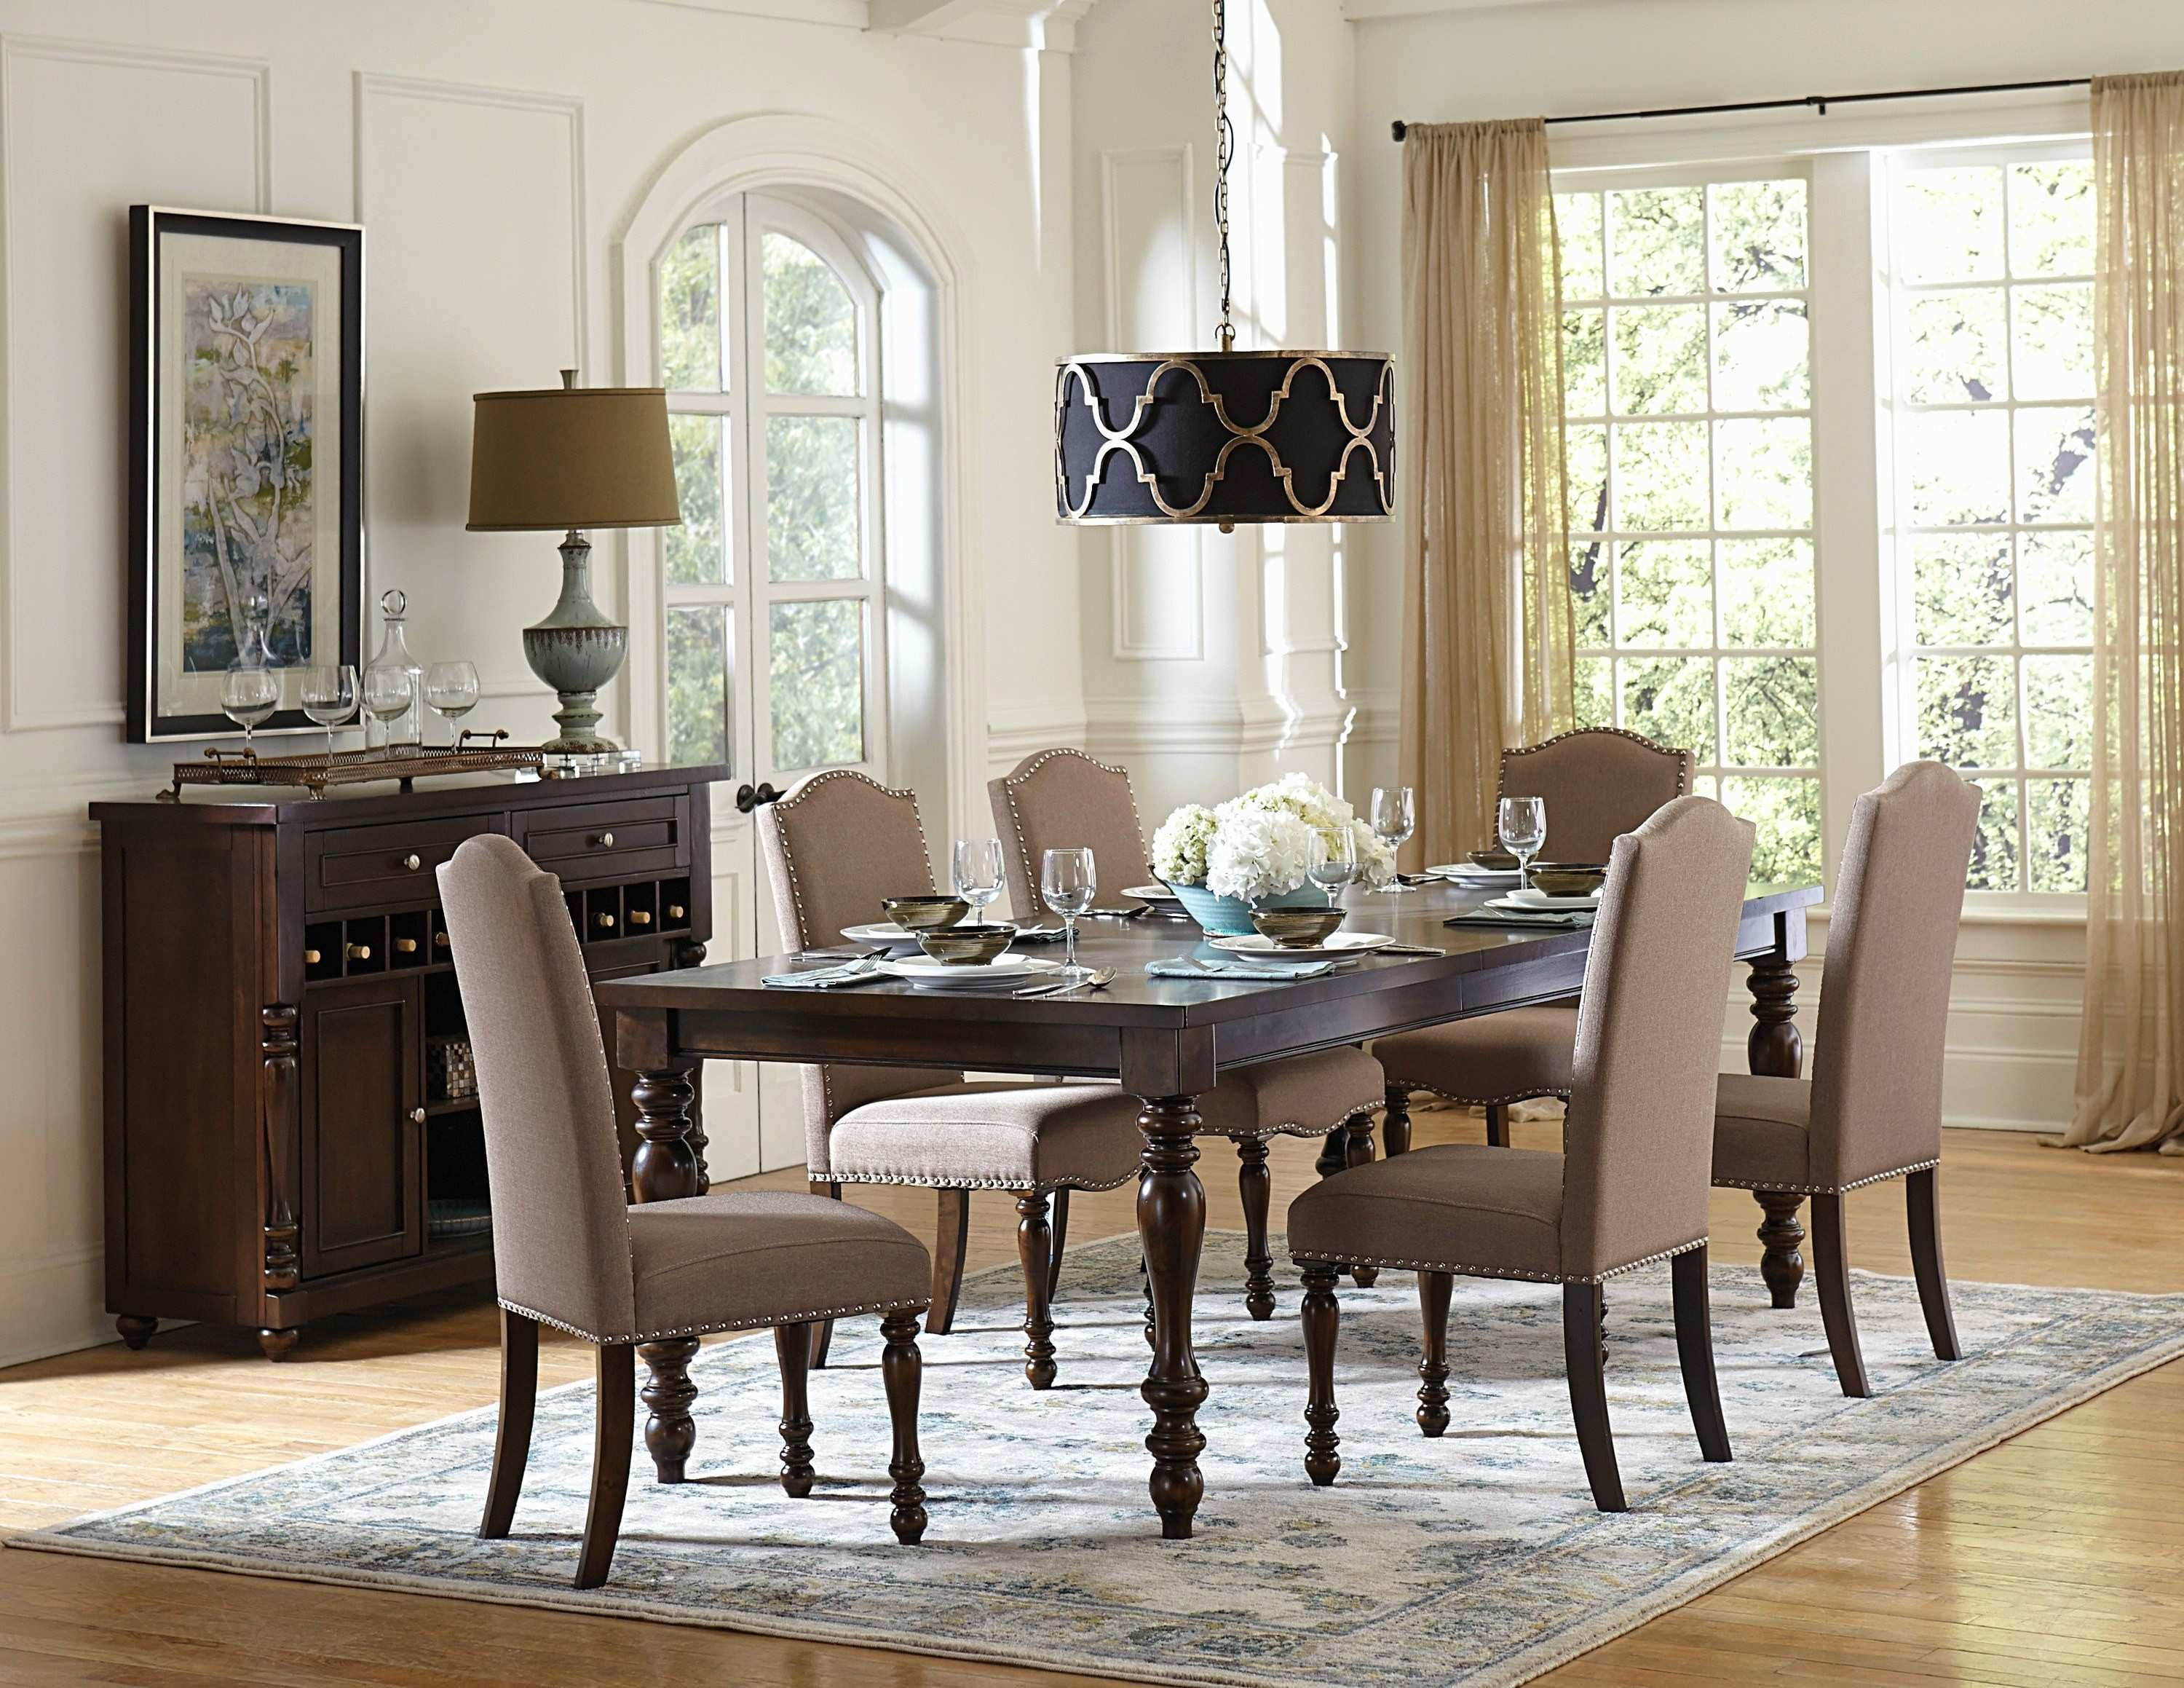 Artistic Inexpensive Dining Room Sets At Dining Room Sets For Sale